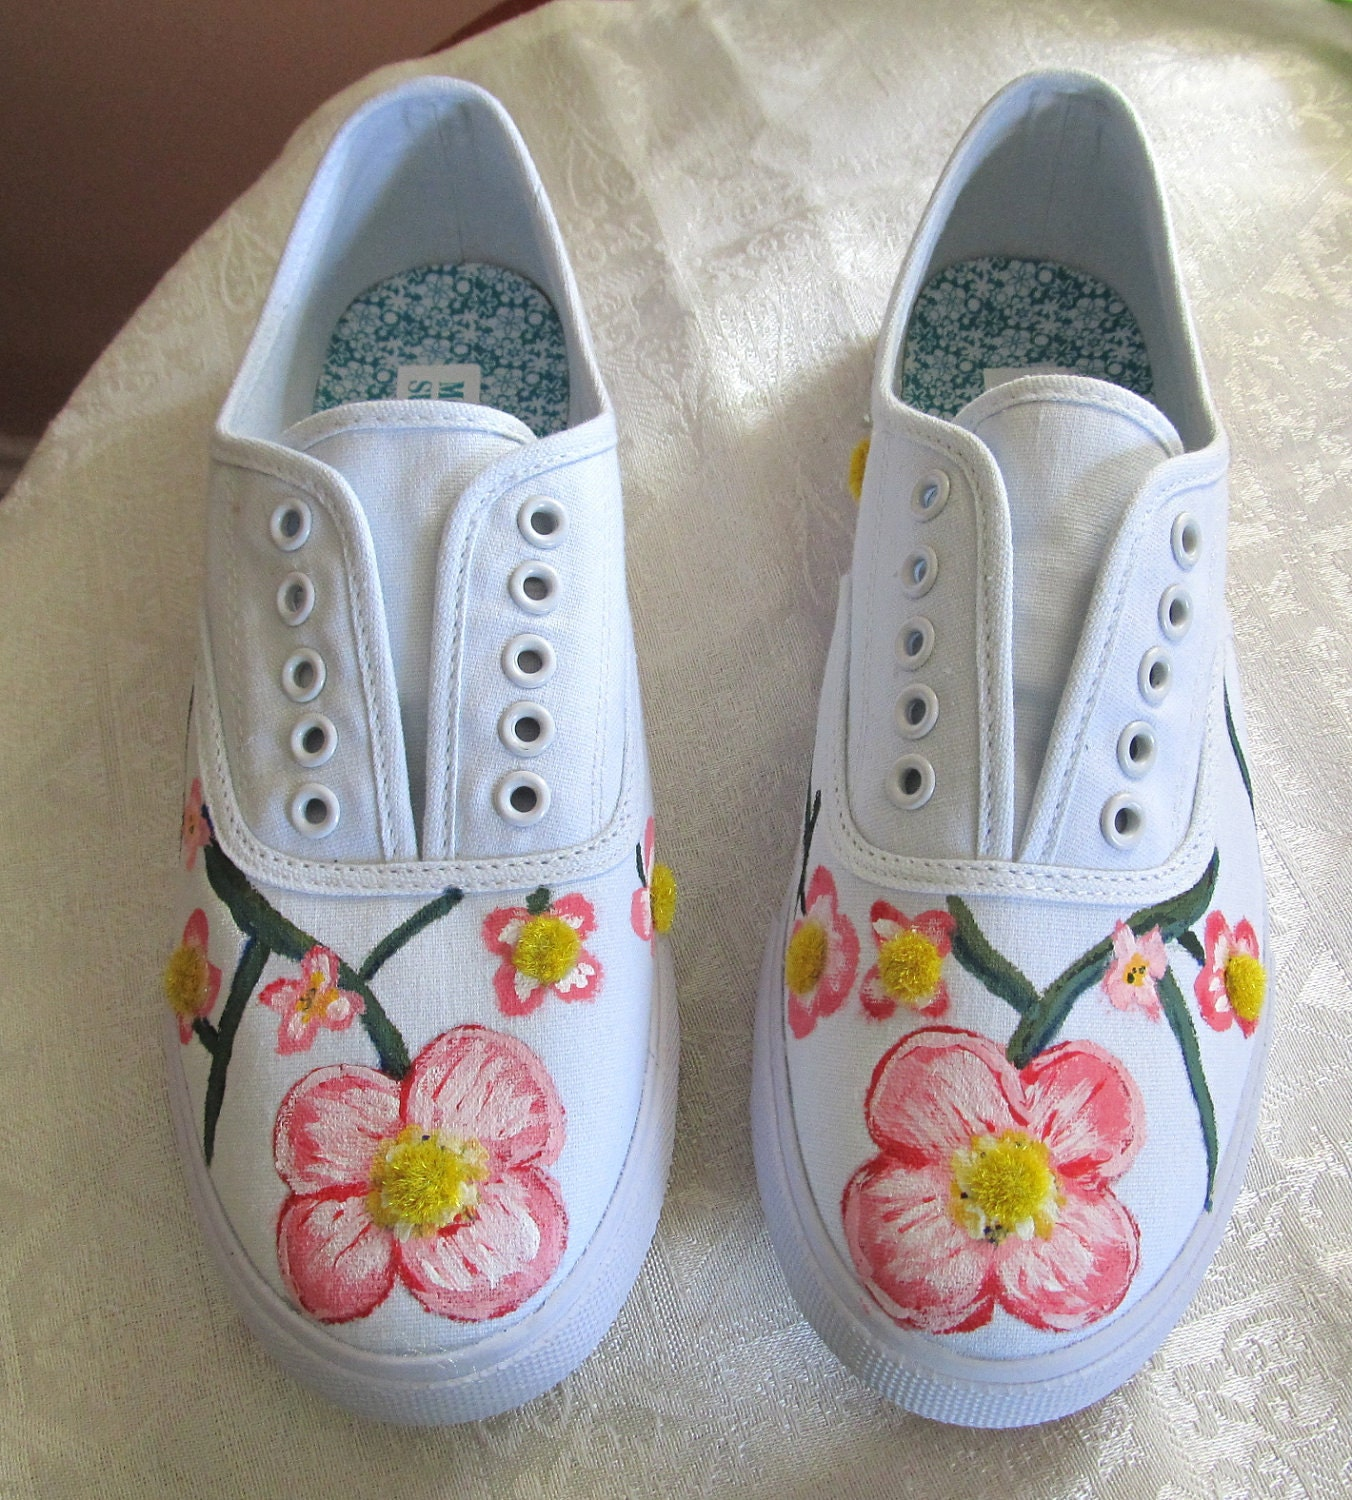 painted tennis shoes sneakers pink dogwood by betmatrho